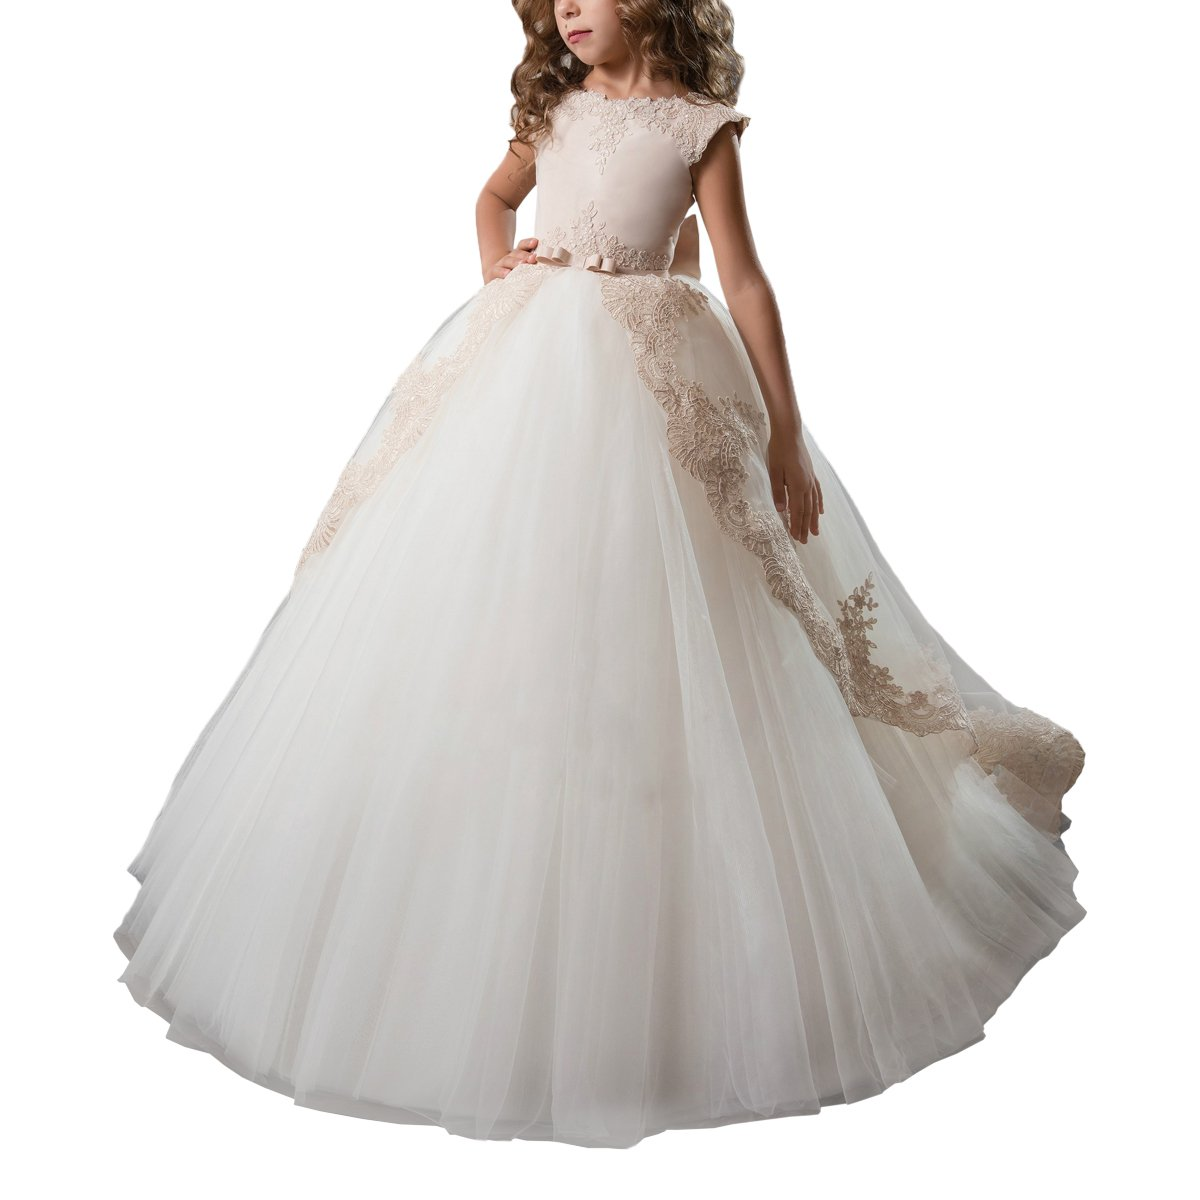 06a9a577997 Top 10 wholesale Flower Girl Dresses Ivory Satin - Chinabrands.com